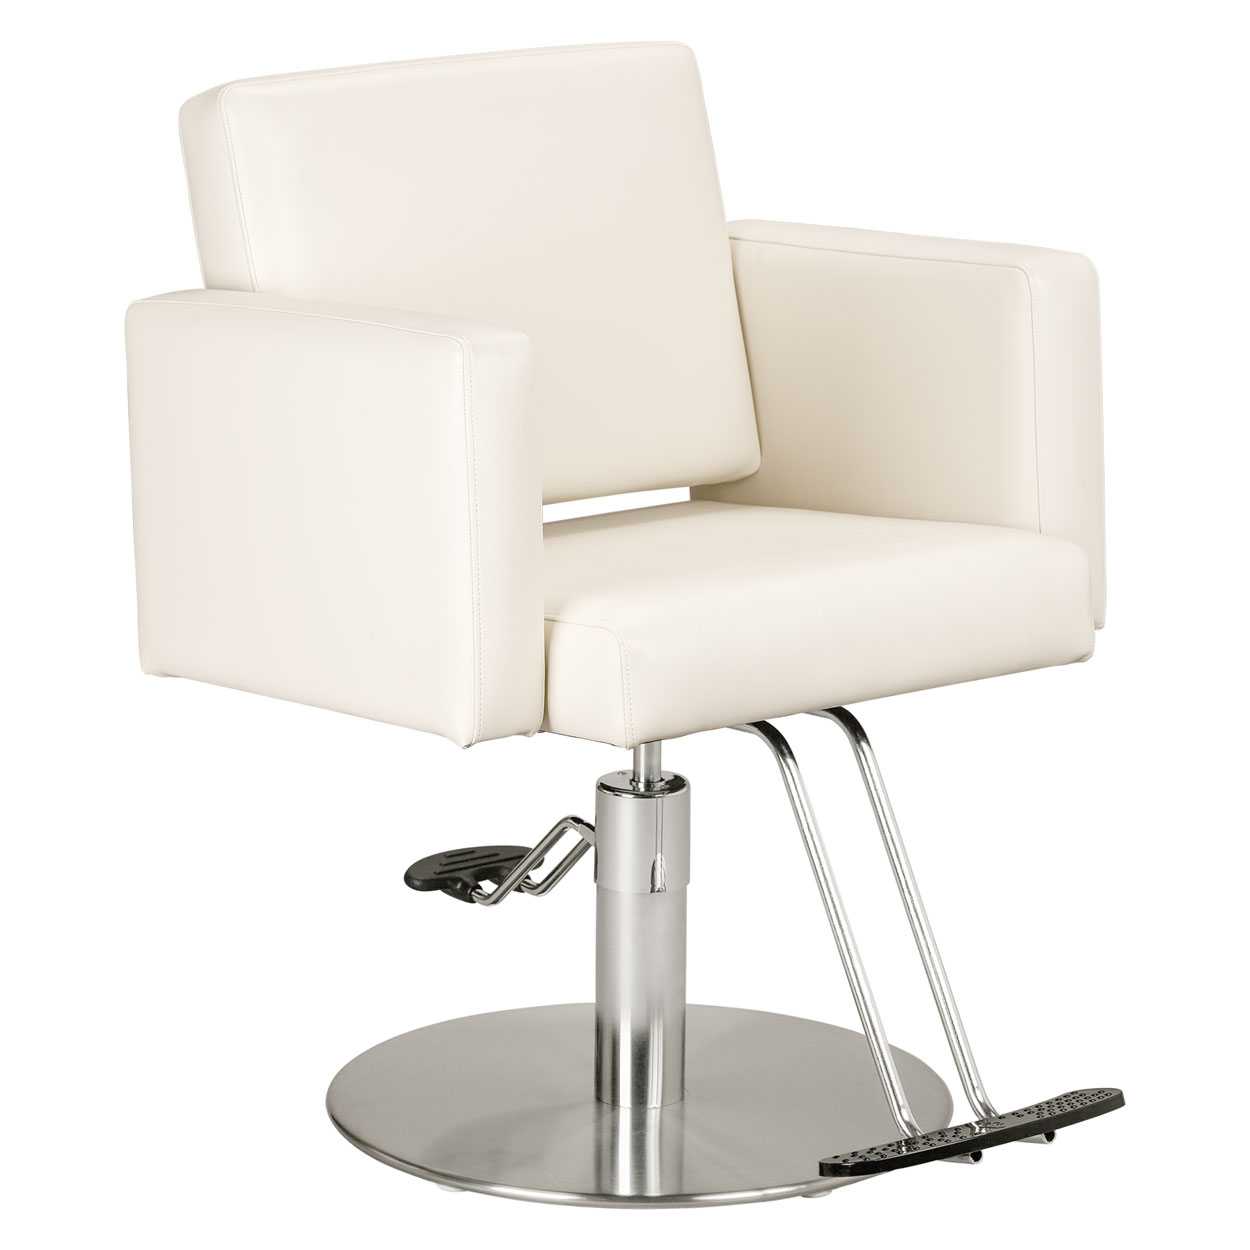 Pibbs 3406 Cosmo Hair Stylist Chair alternative product image 4